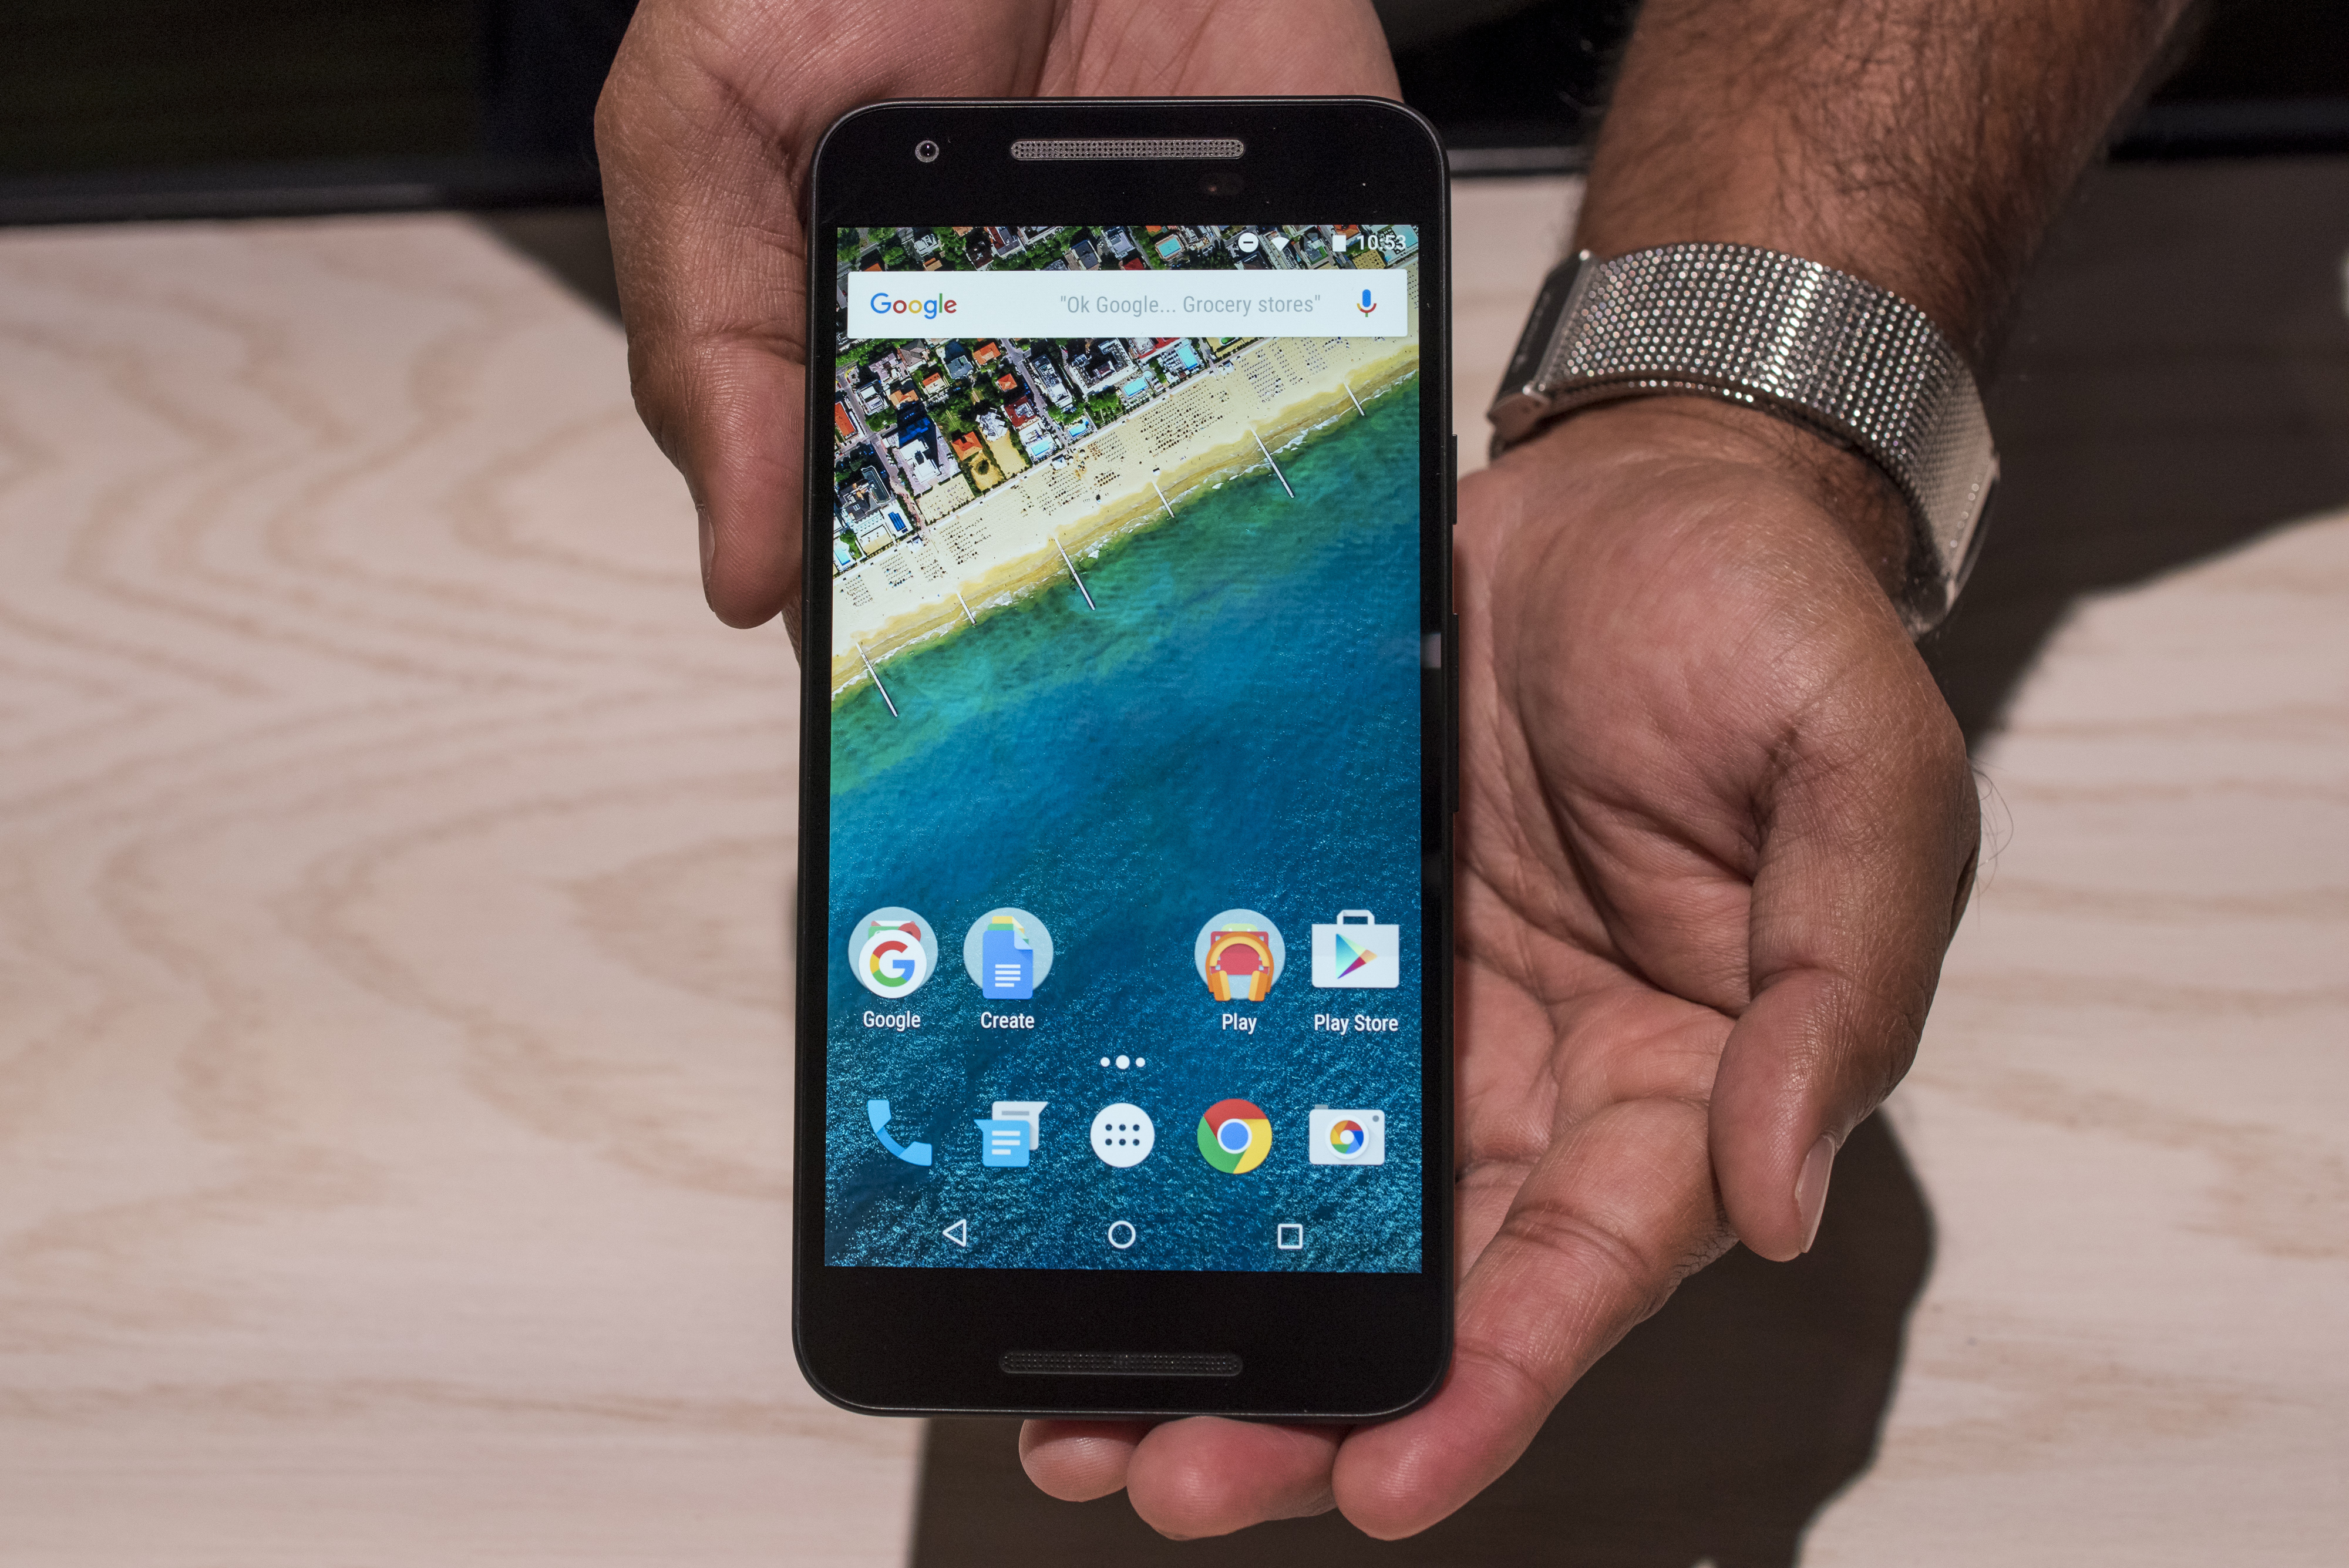 An attendee displays a Nexus 6P smartphone for a photograph during a Google Inc. event in San Francisco, California, U.S., on Tuesday, Sept. 29, 2015.